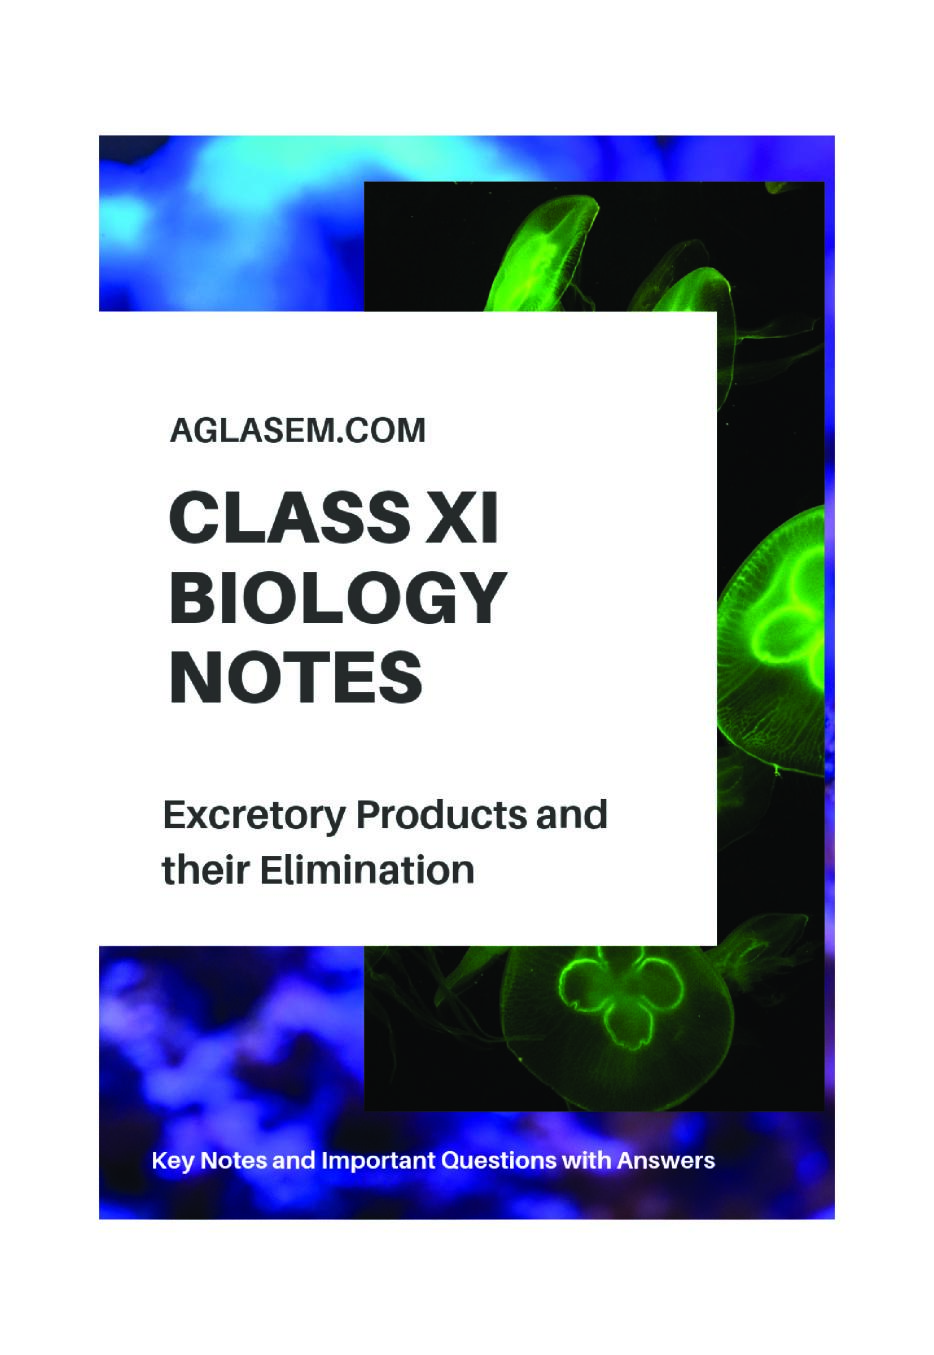 Class 11 Biology Notes for Excretory Products and Their Elimination